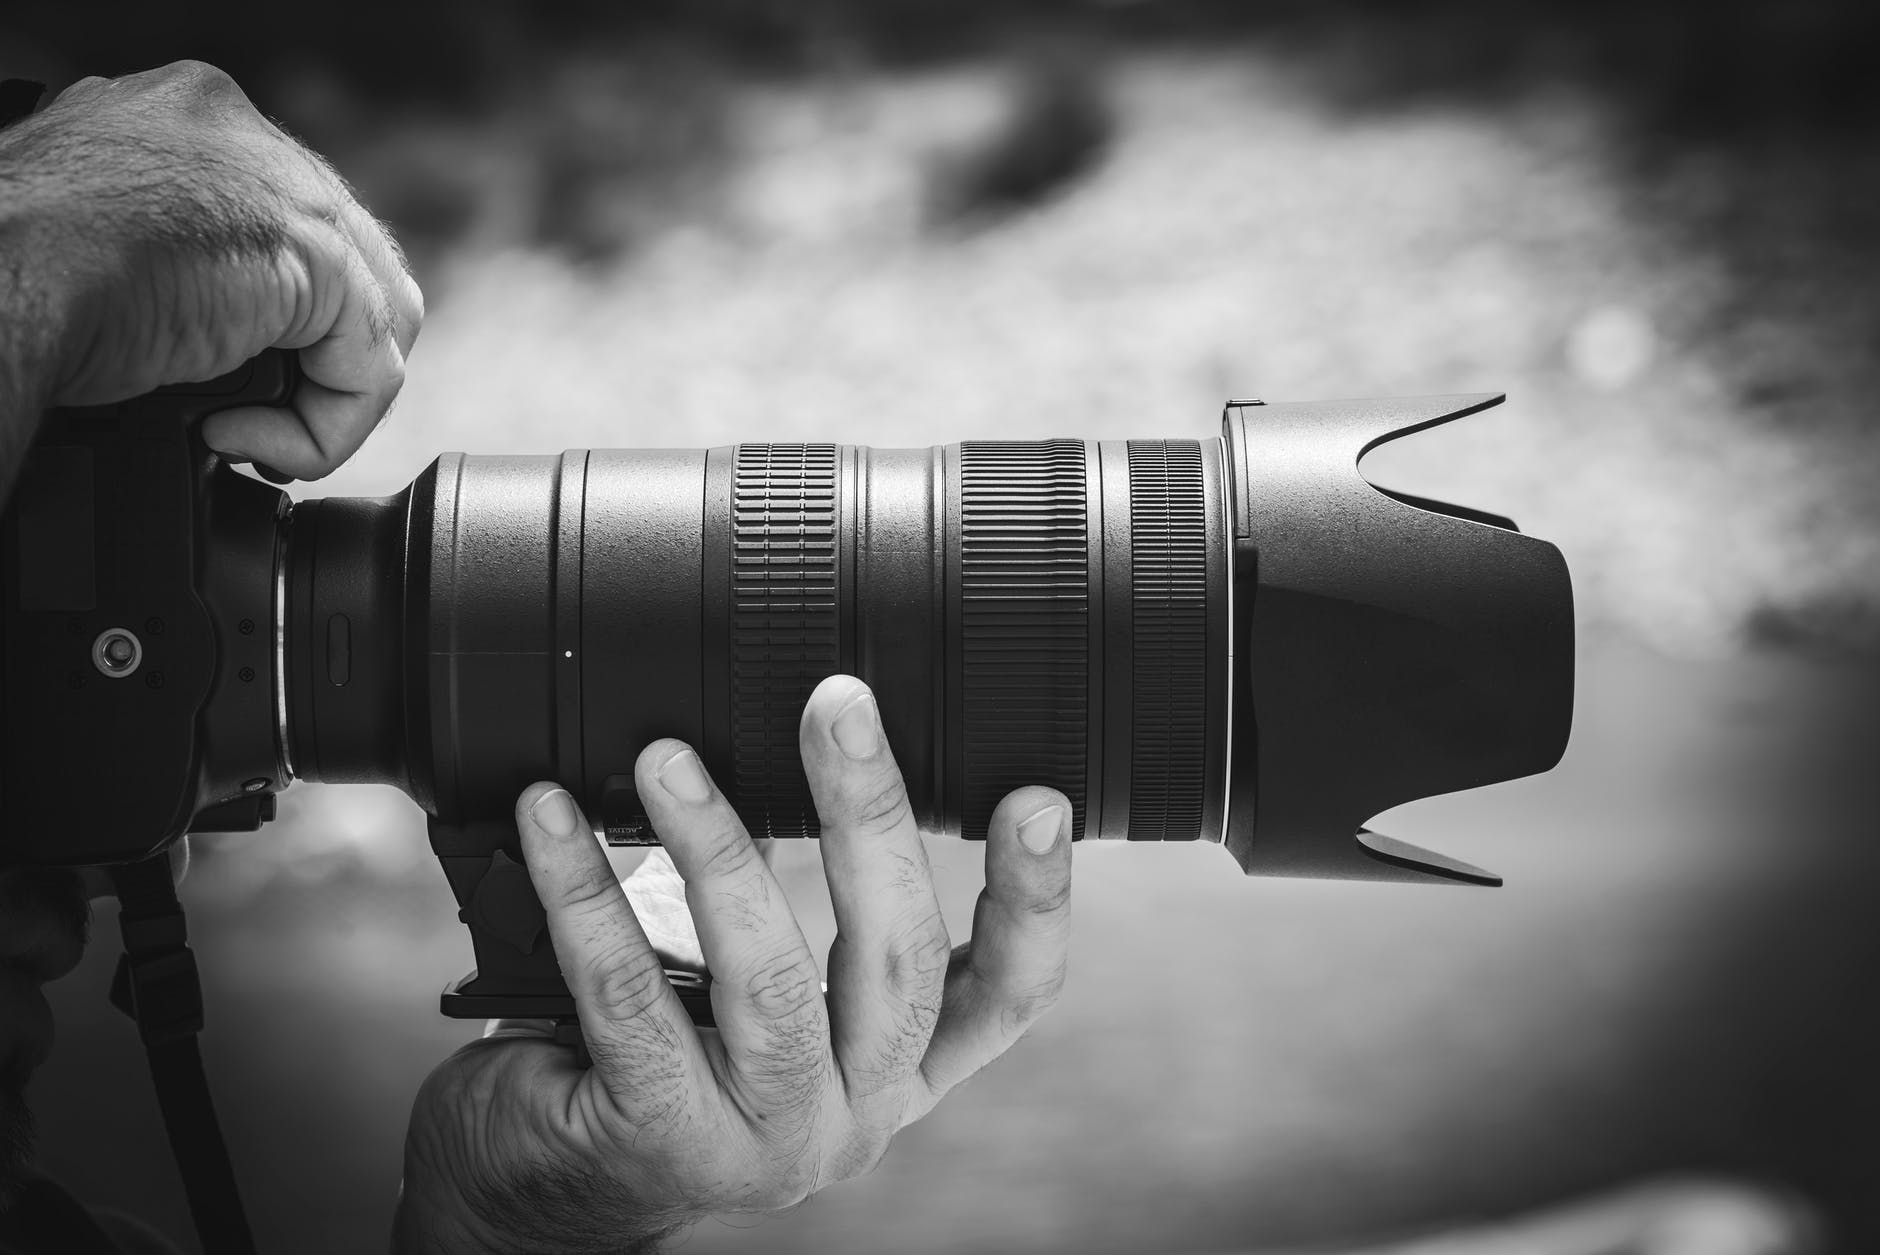 The Role of Photographs